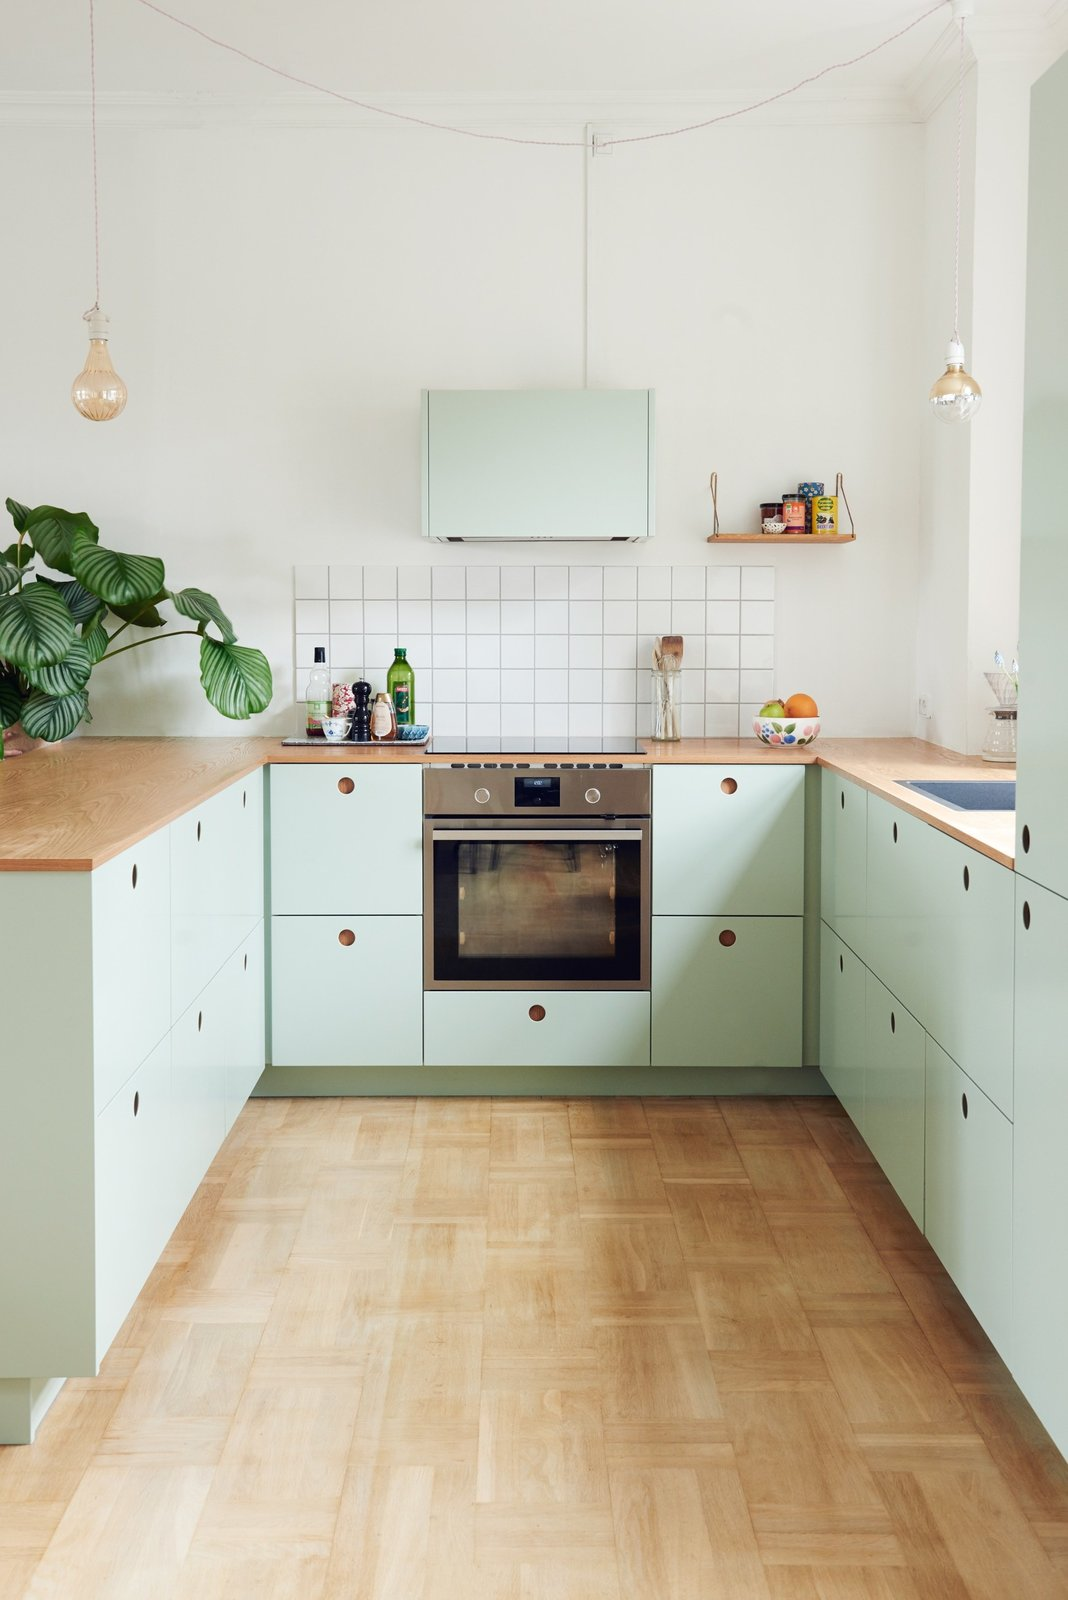 Kitchen, Wood Counter, Light Hardwood Floor, Pendant Lighting, Wall Oven, Range Hood, Drop In Sink, Colorful Cabinet, Cooktops, and Ceramic Tile Backsplashe Danish blogger, Tikkie Elsøe, chose mint green  Photo 4 of 9 in Modern Kitchen Upgrade Ideas From a Danish Design Firm That's Challenging the Kitchen Market